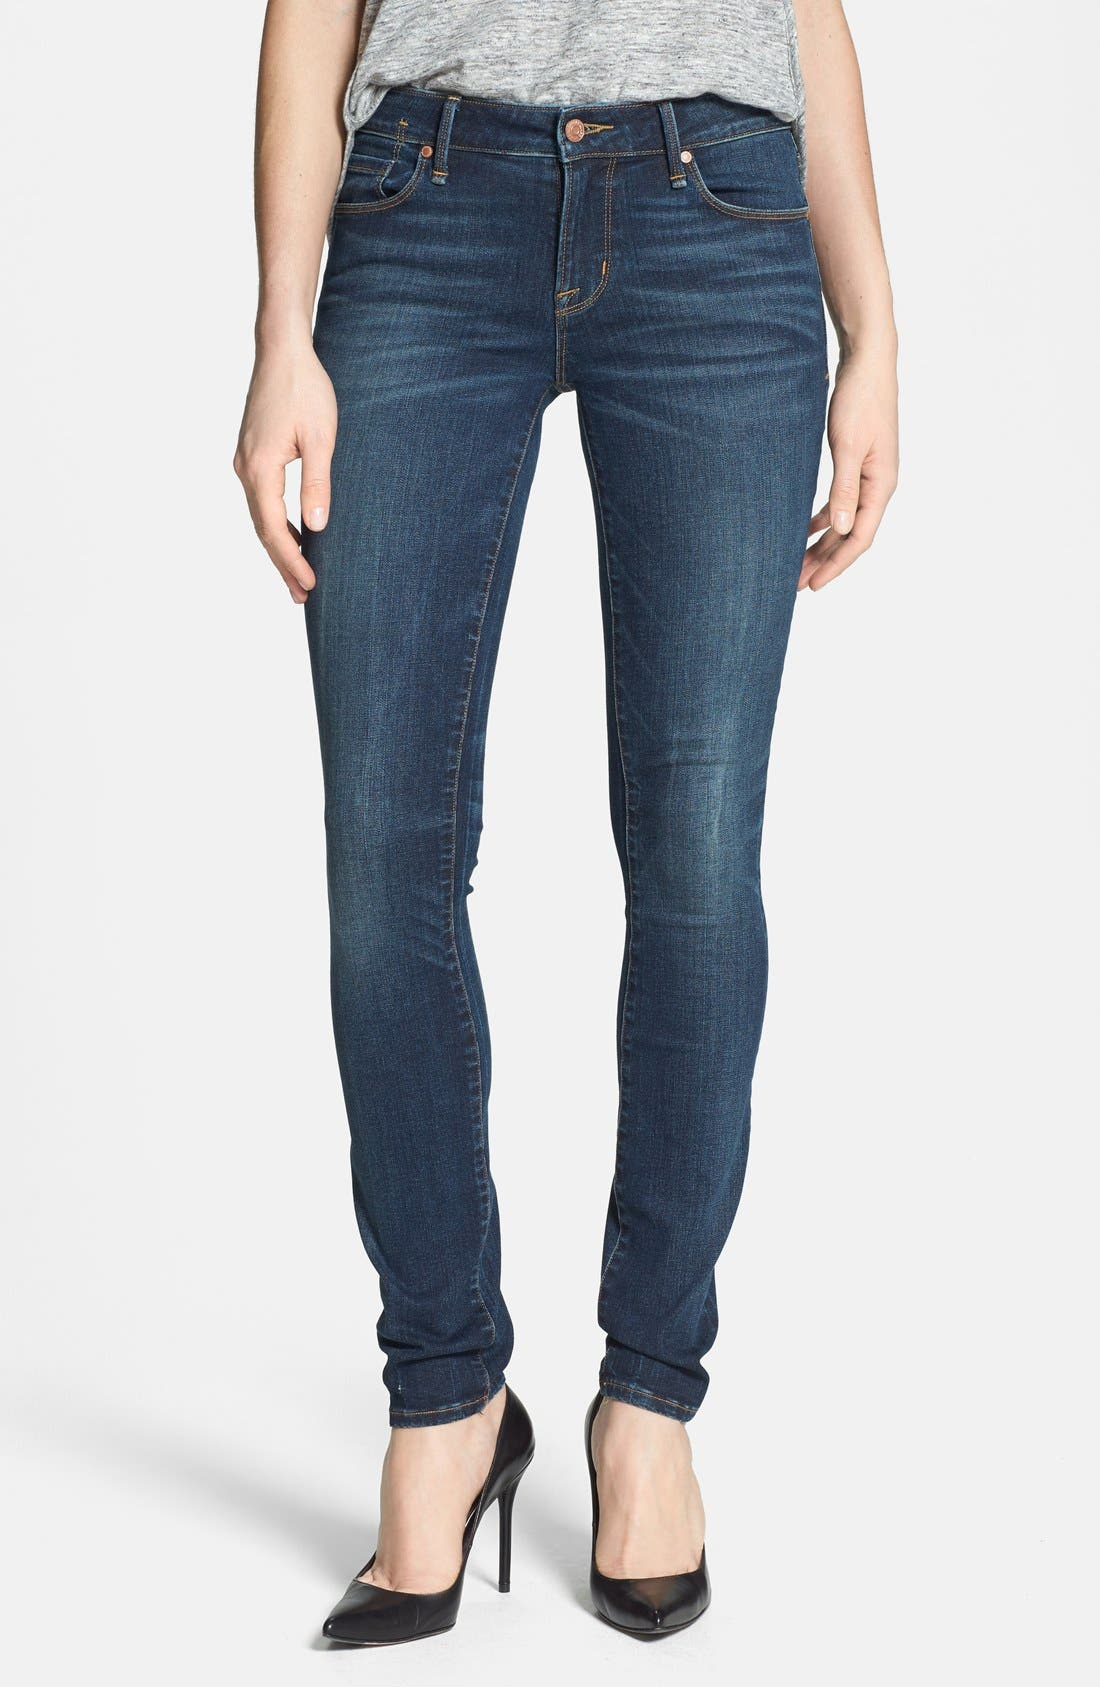 Alternate Image 1 Selected - MARC BY MARC JACOBS 'Gaia' Stretch Super Skinny Jeans (Melrose)